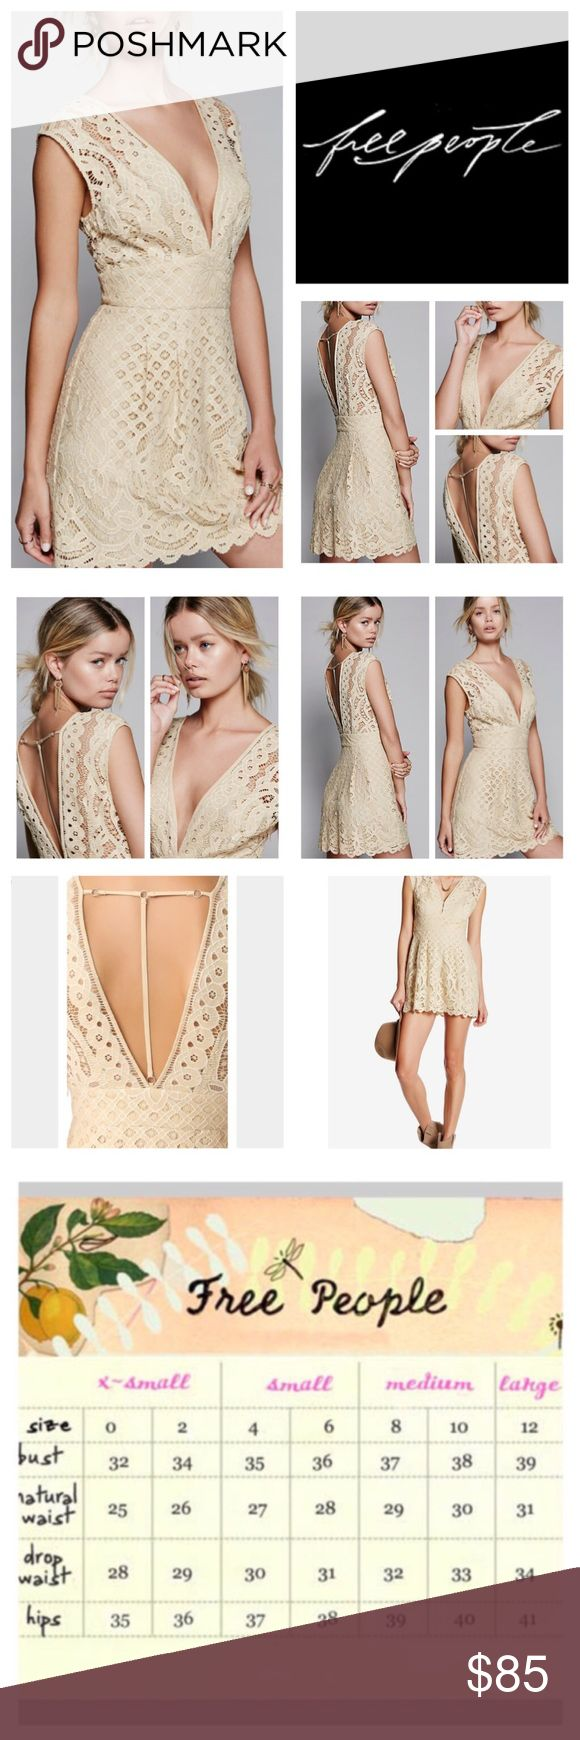 """Free People One Million Lovers Lace Mini.  NWT. Free People One Million Lovers Lace Mini Dress, 60% nylon, 40% cotton, washable, 17"""" armpit to armpit (34"""" all around) 30"""" waist no stretch, 32.5"""" length, lovely lacey dress featuring a front and back plunging V with a cute back strappy detail, scalloped hemline, Femme fit-n-flare shape, two hook-n-eye front closure, hidden side zip closure, lined, measurements are approx.  NO TRADES Free People Dresses Mini"""